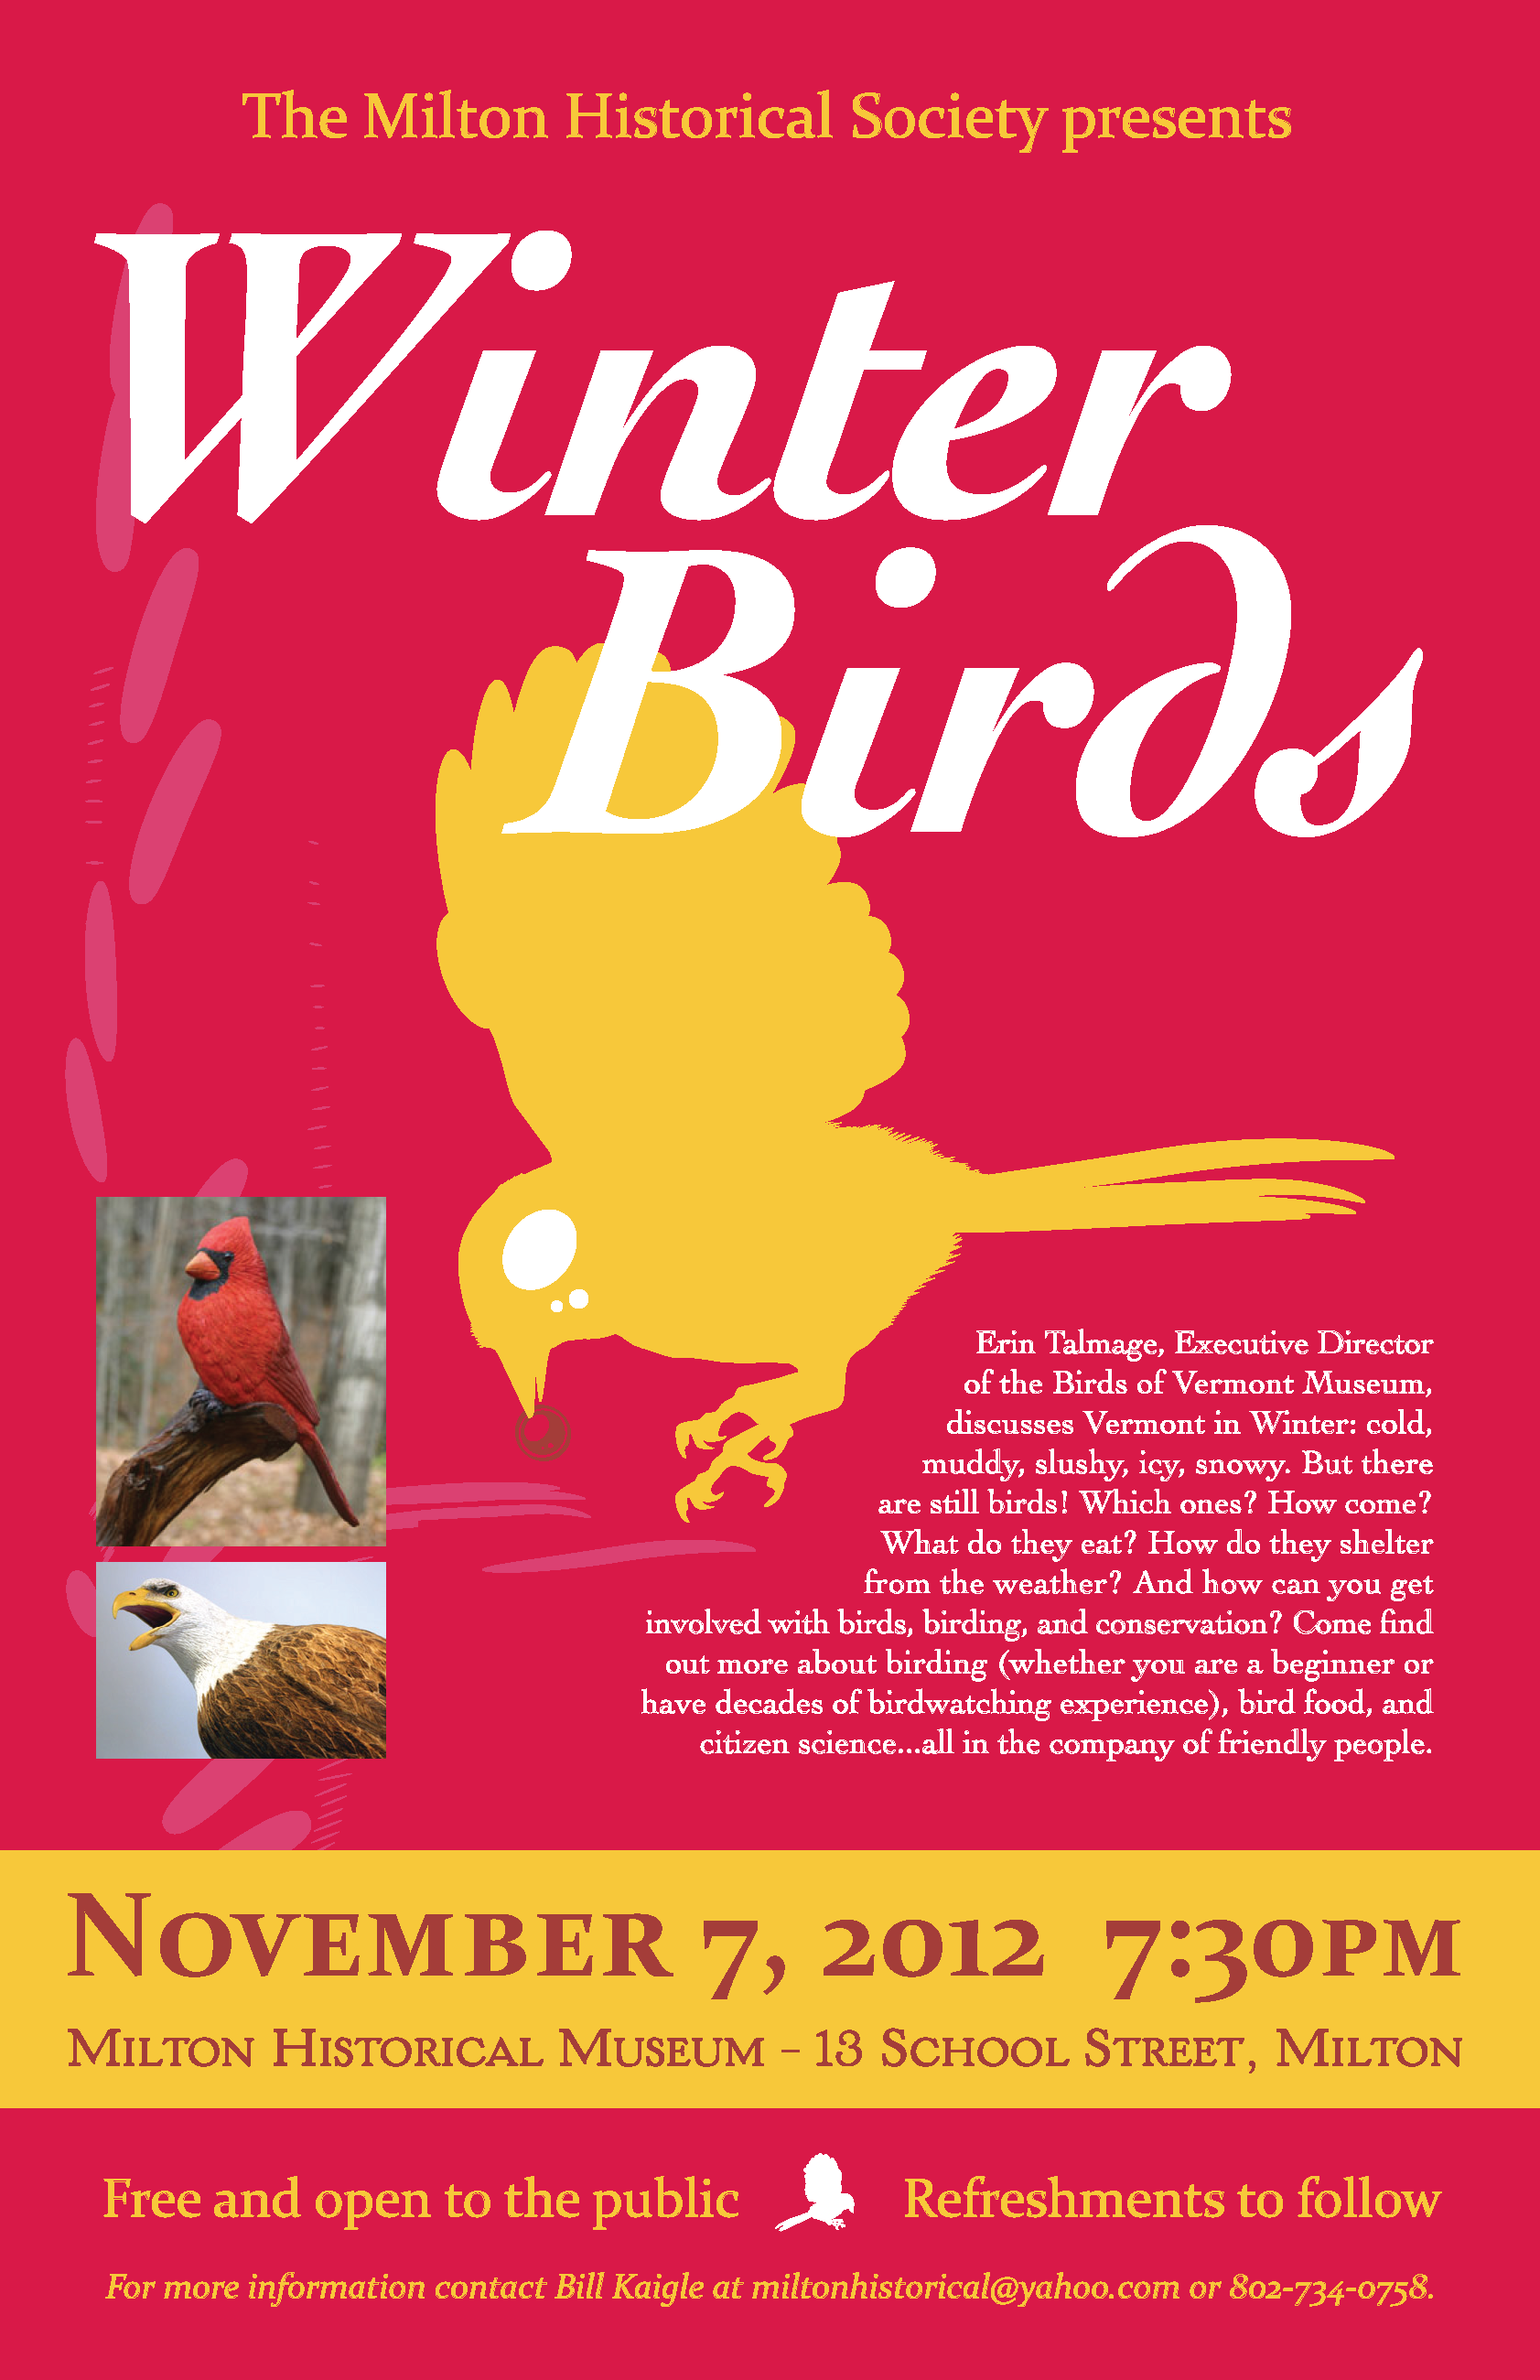 Winter Birds with the Milton Historical Society